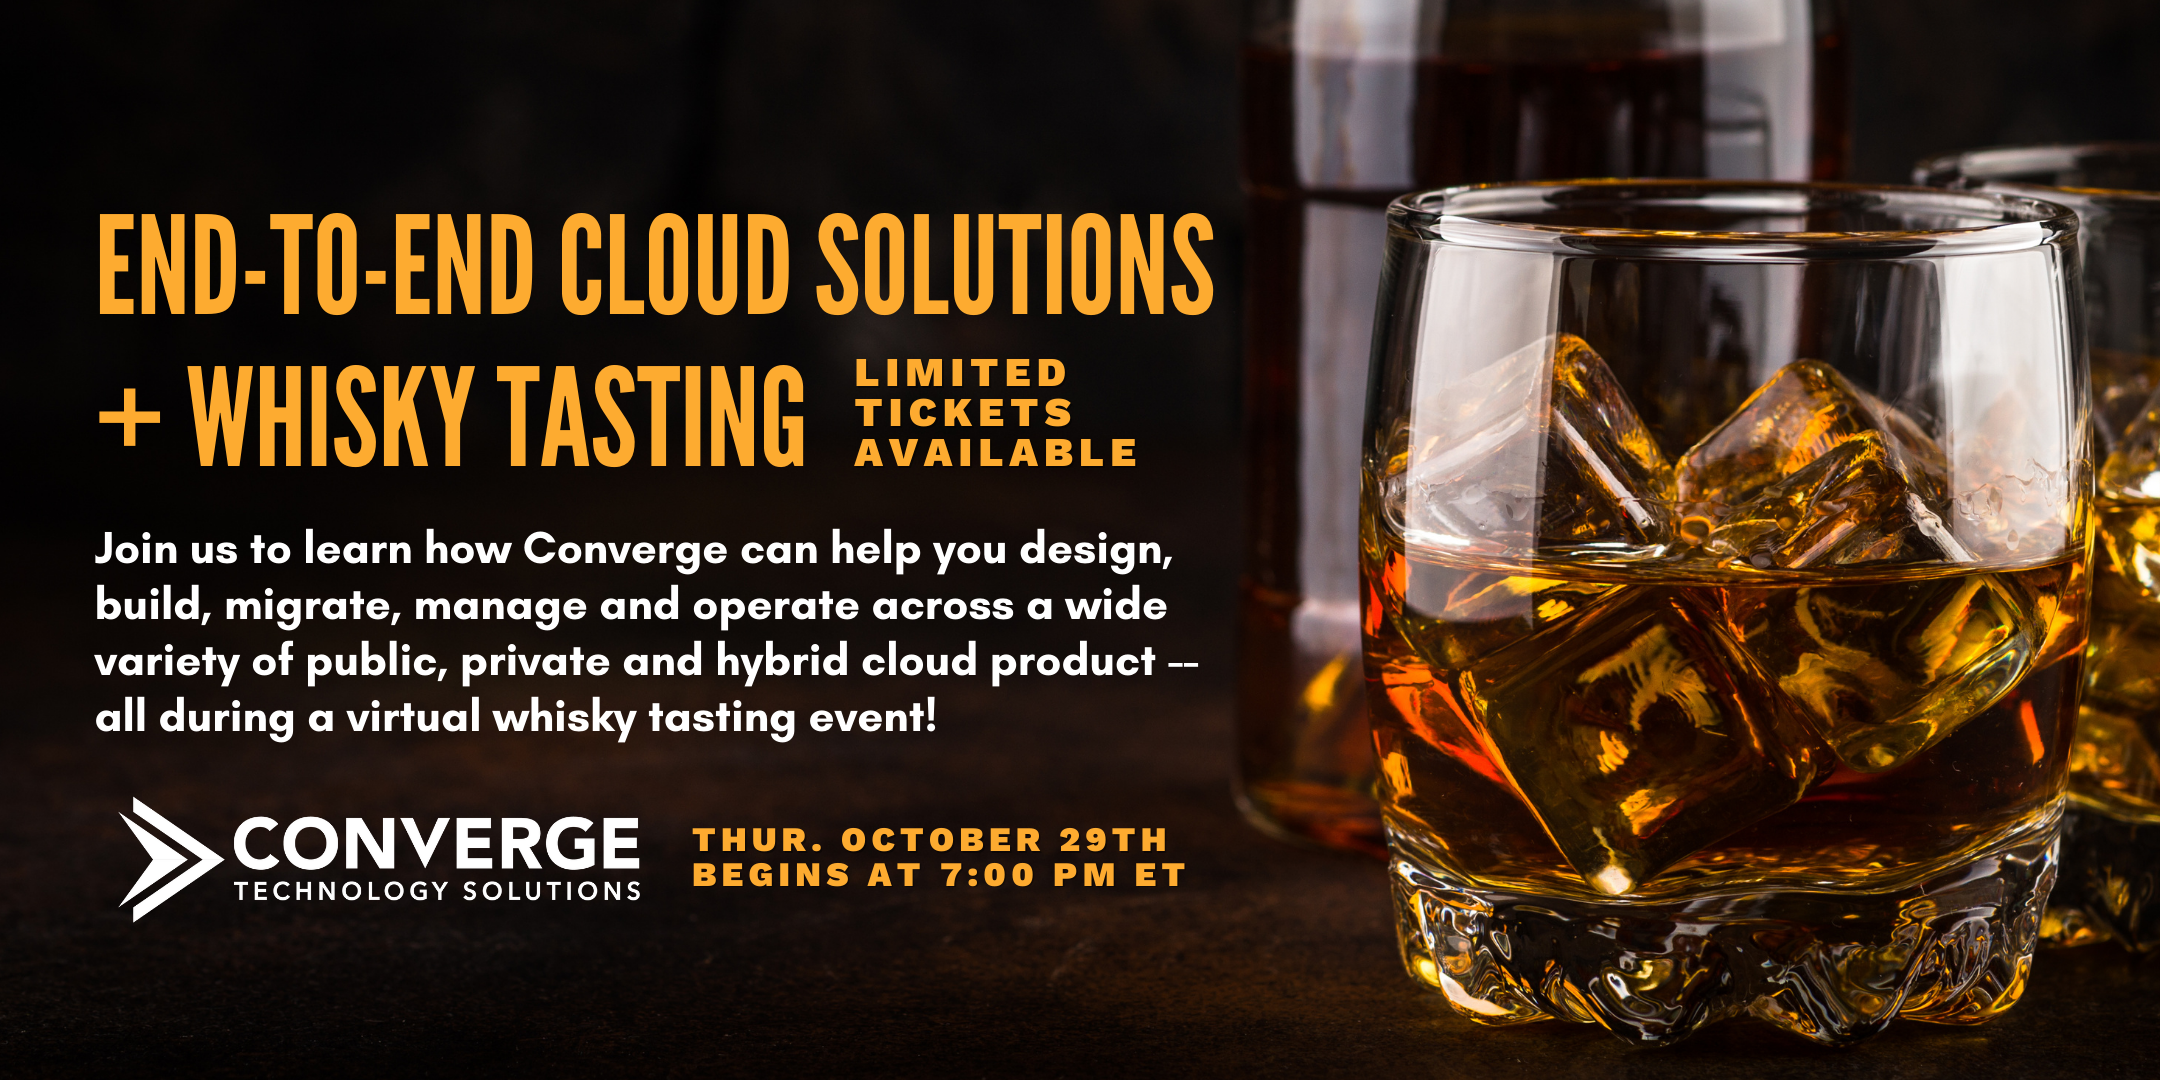 End-to-End Cloud Solutions and Whisky Tasting